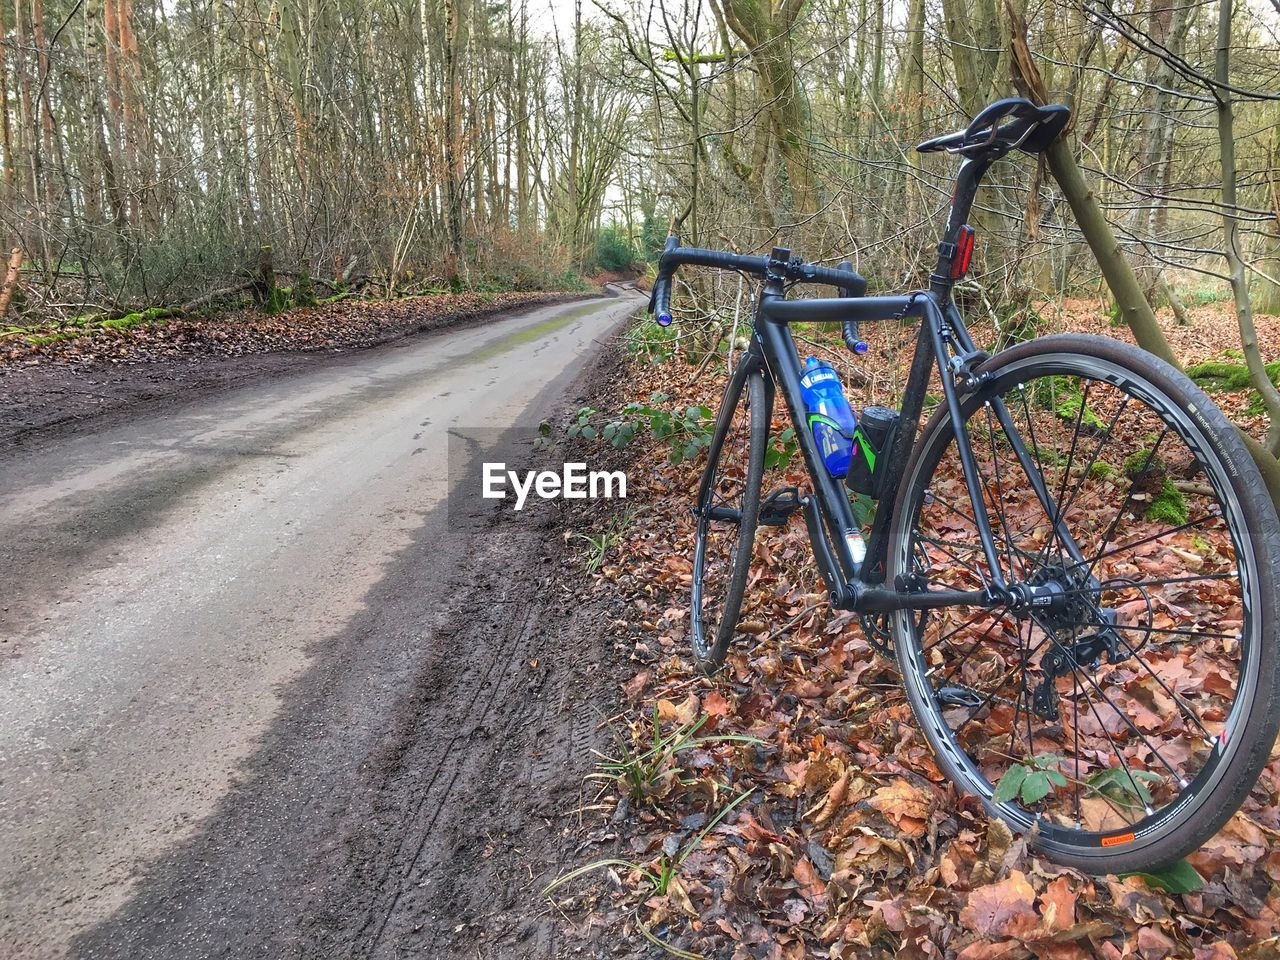 transportation, tree, bicycle, plant, land vehicle, mode of transportation, land, no people, stationary, day, nature, forest, autumn, tree trunk, leaf, trunk, outdoors, road, plant part, absence, change, wheel